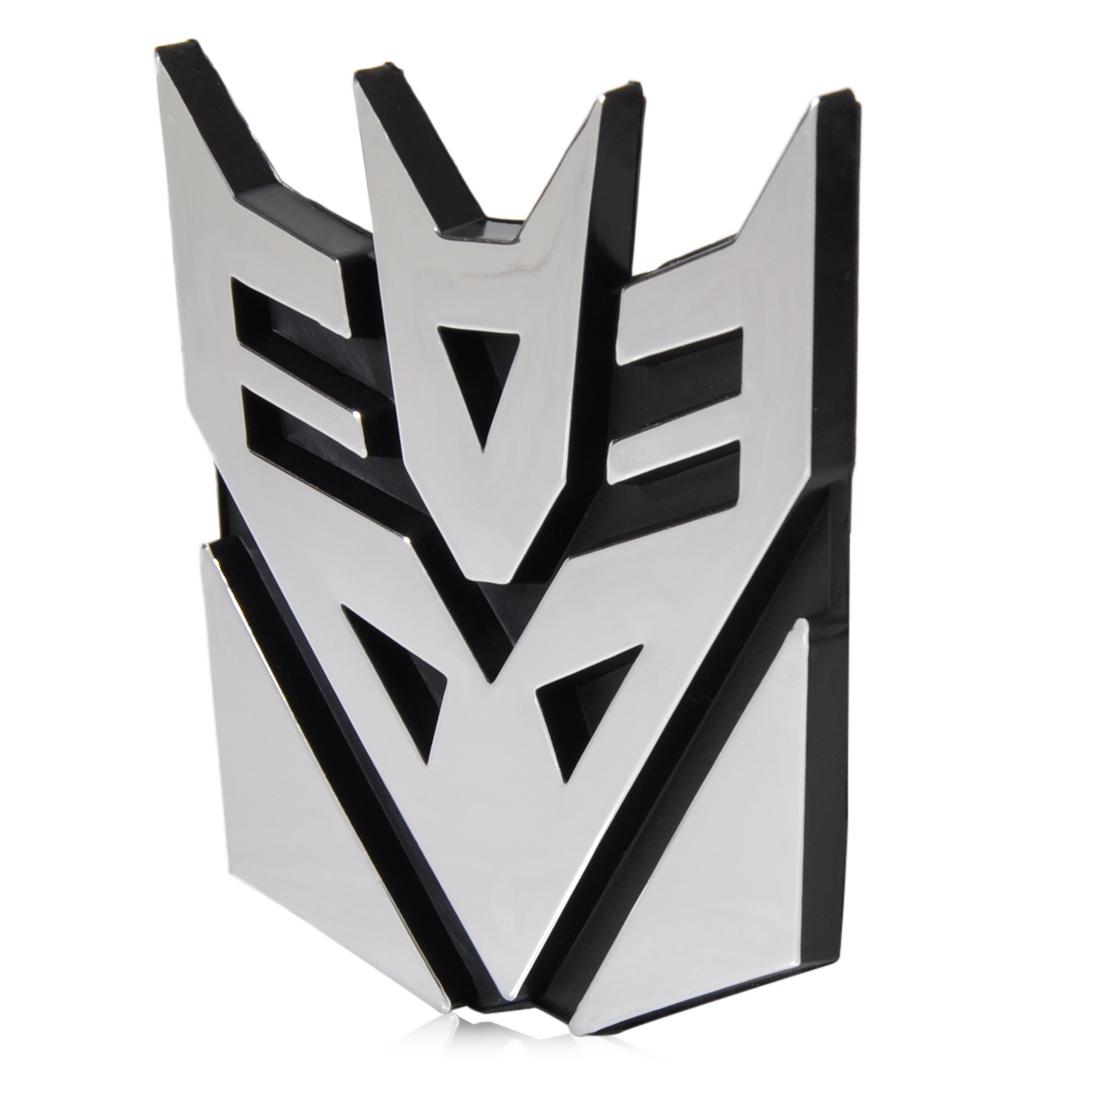 3D Logo Protector Autobot Optimus/Deception Transformers